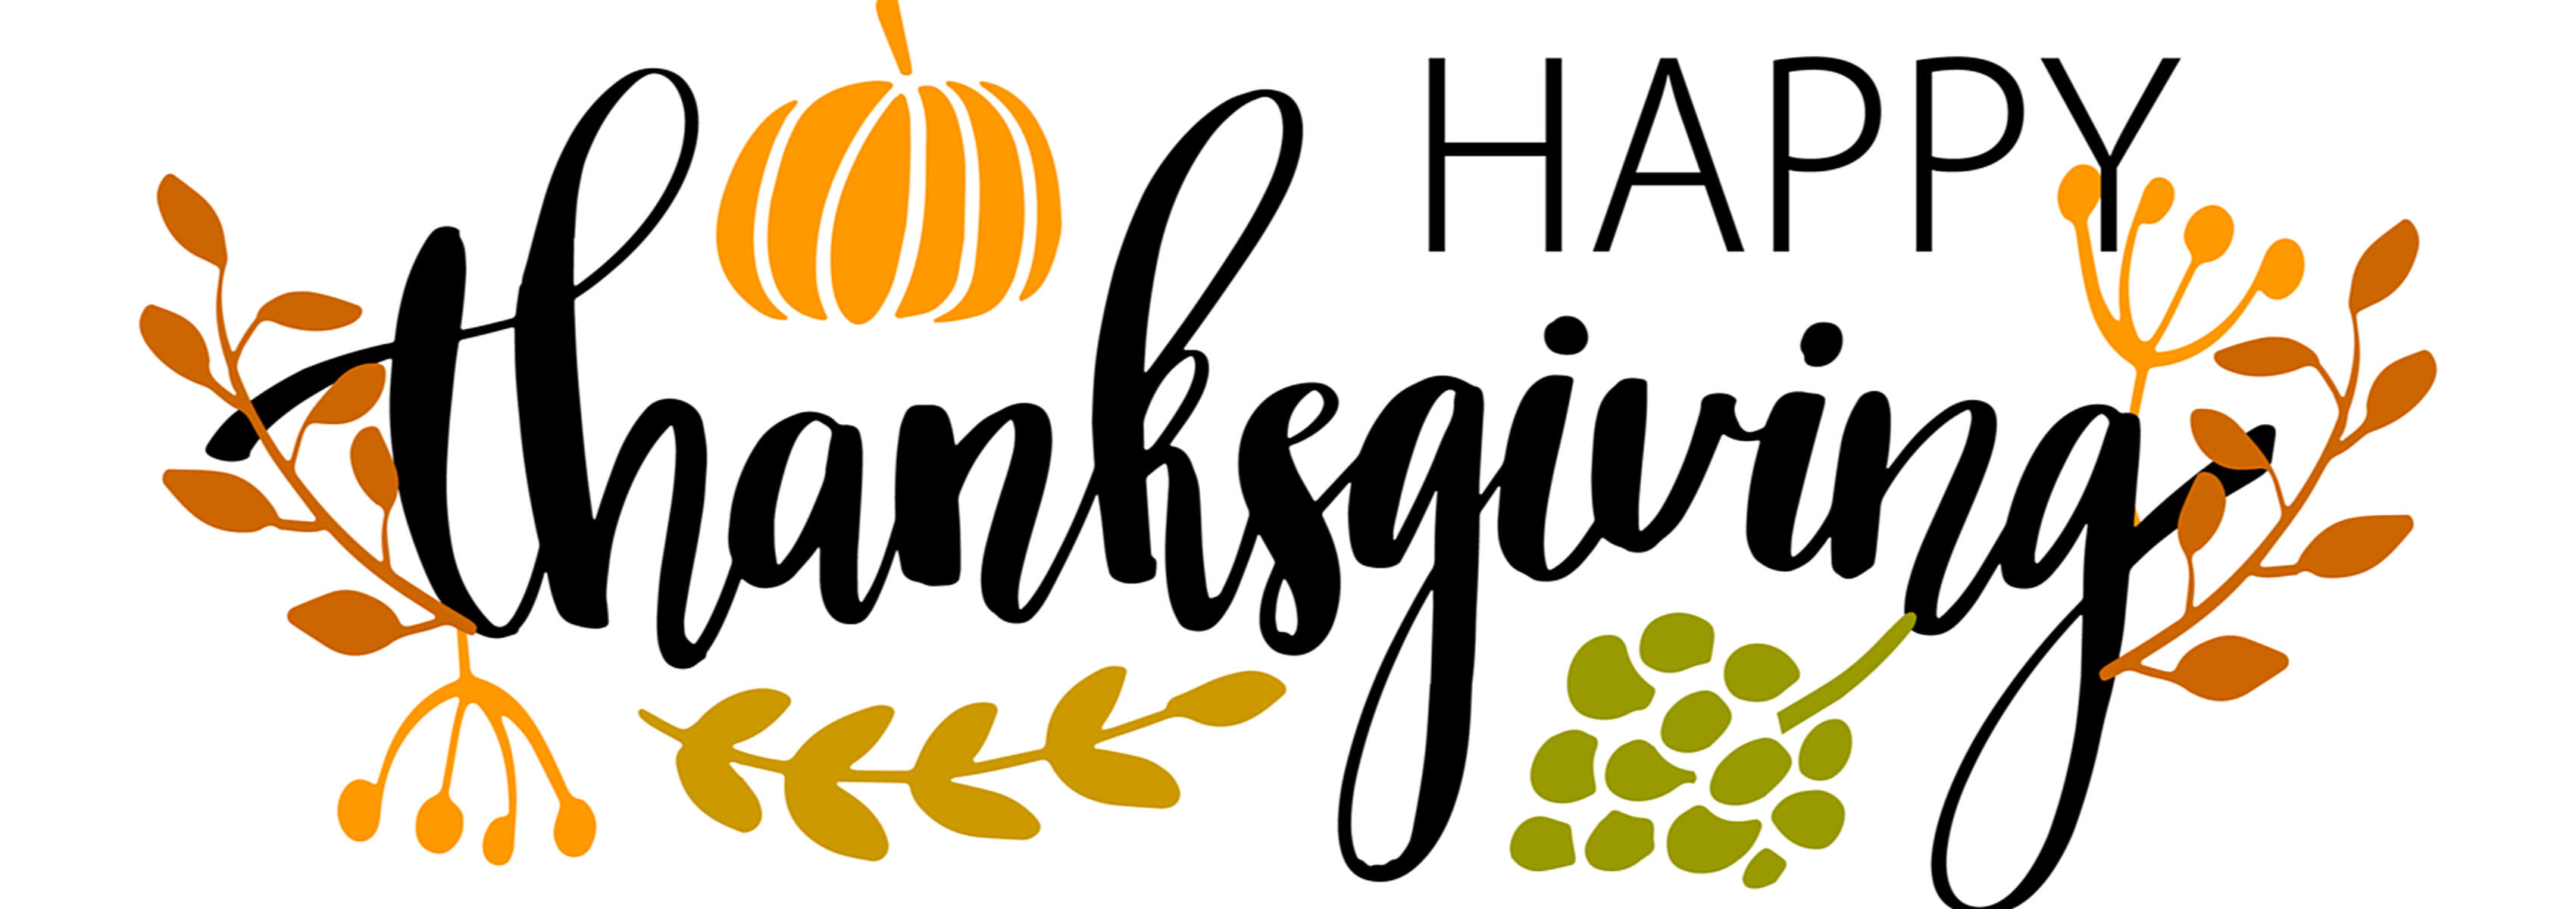 Happy Thanksgiving from the SiteSeer team!